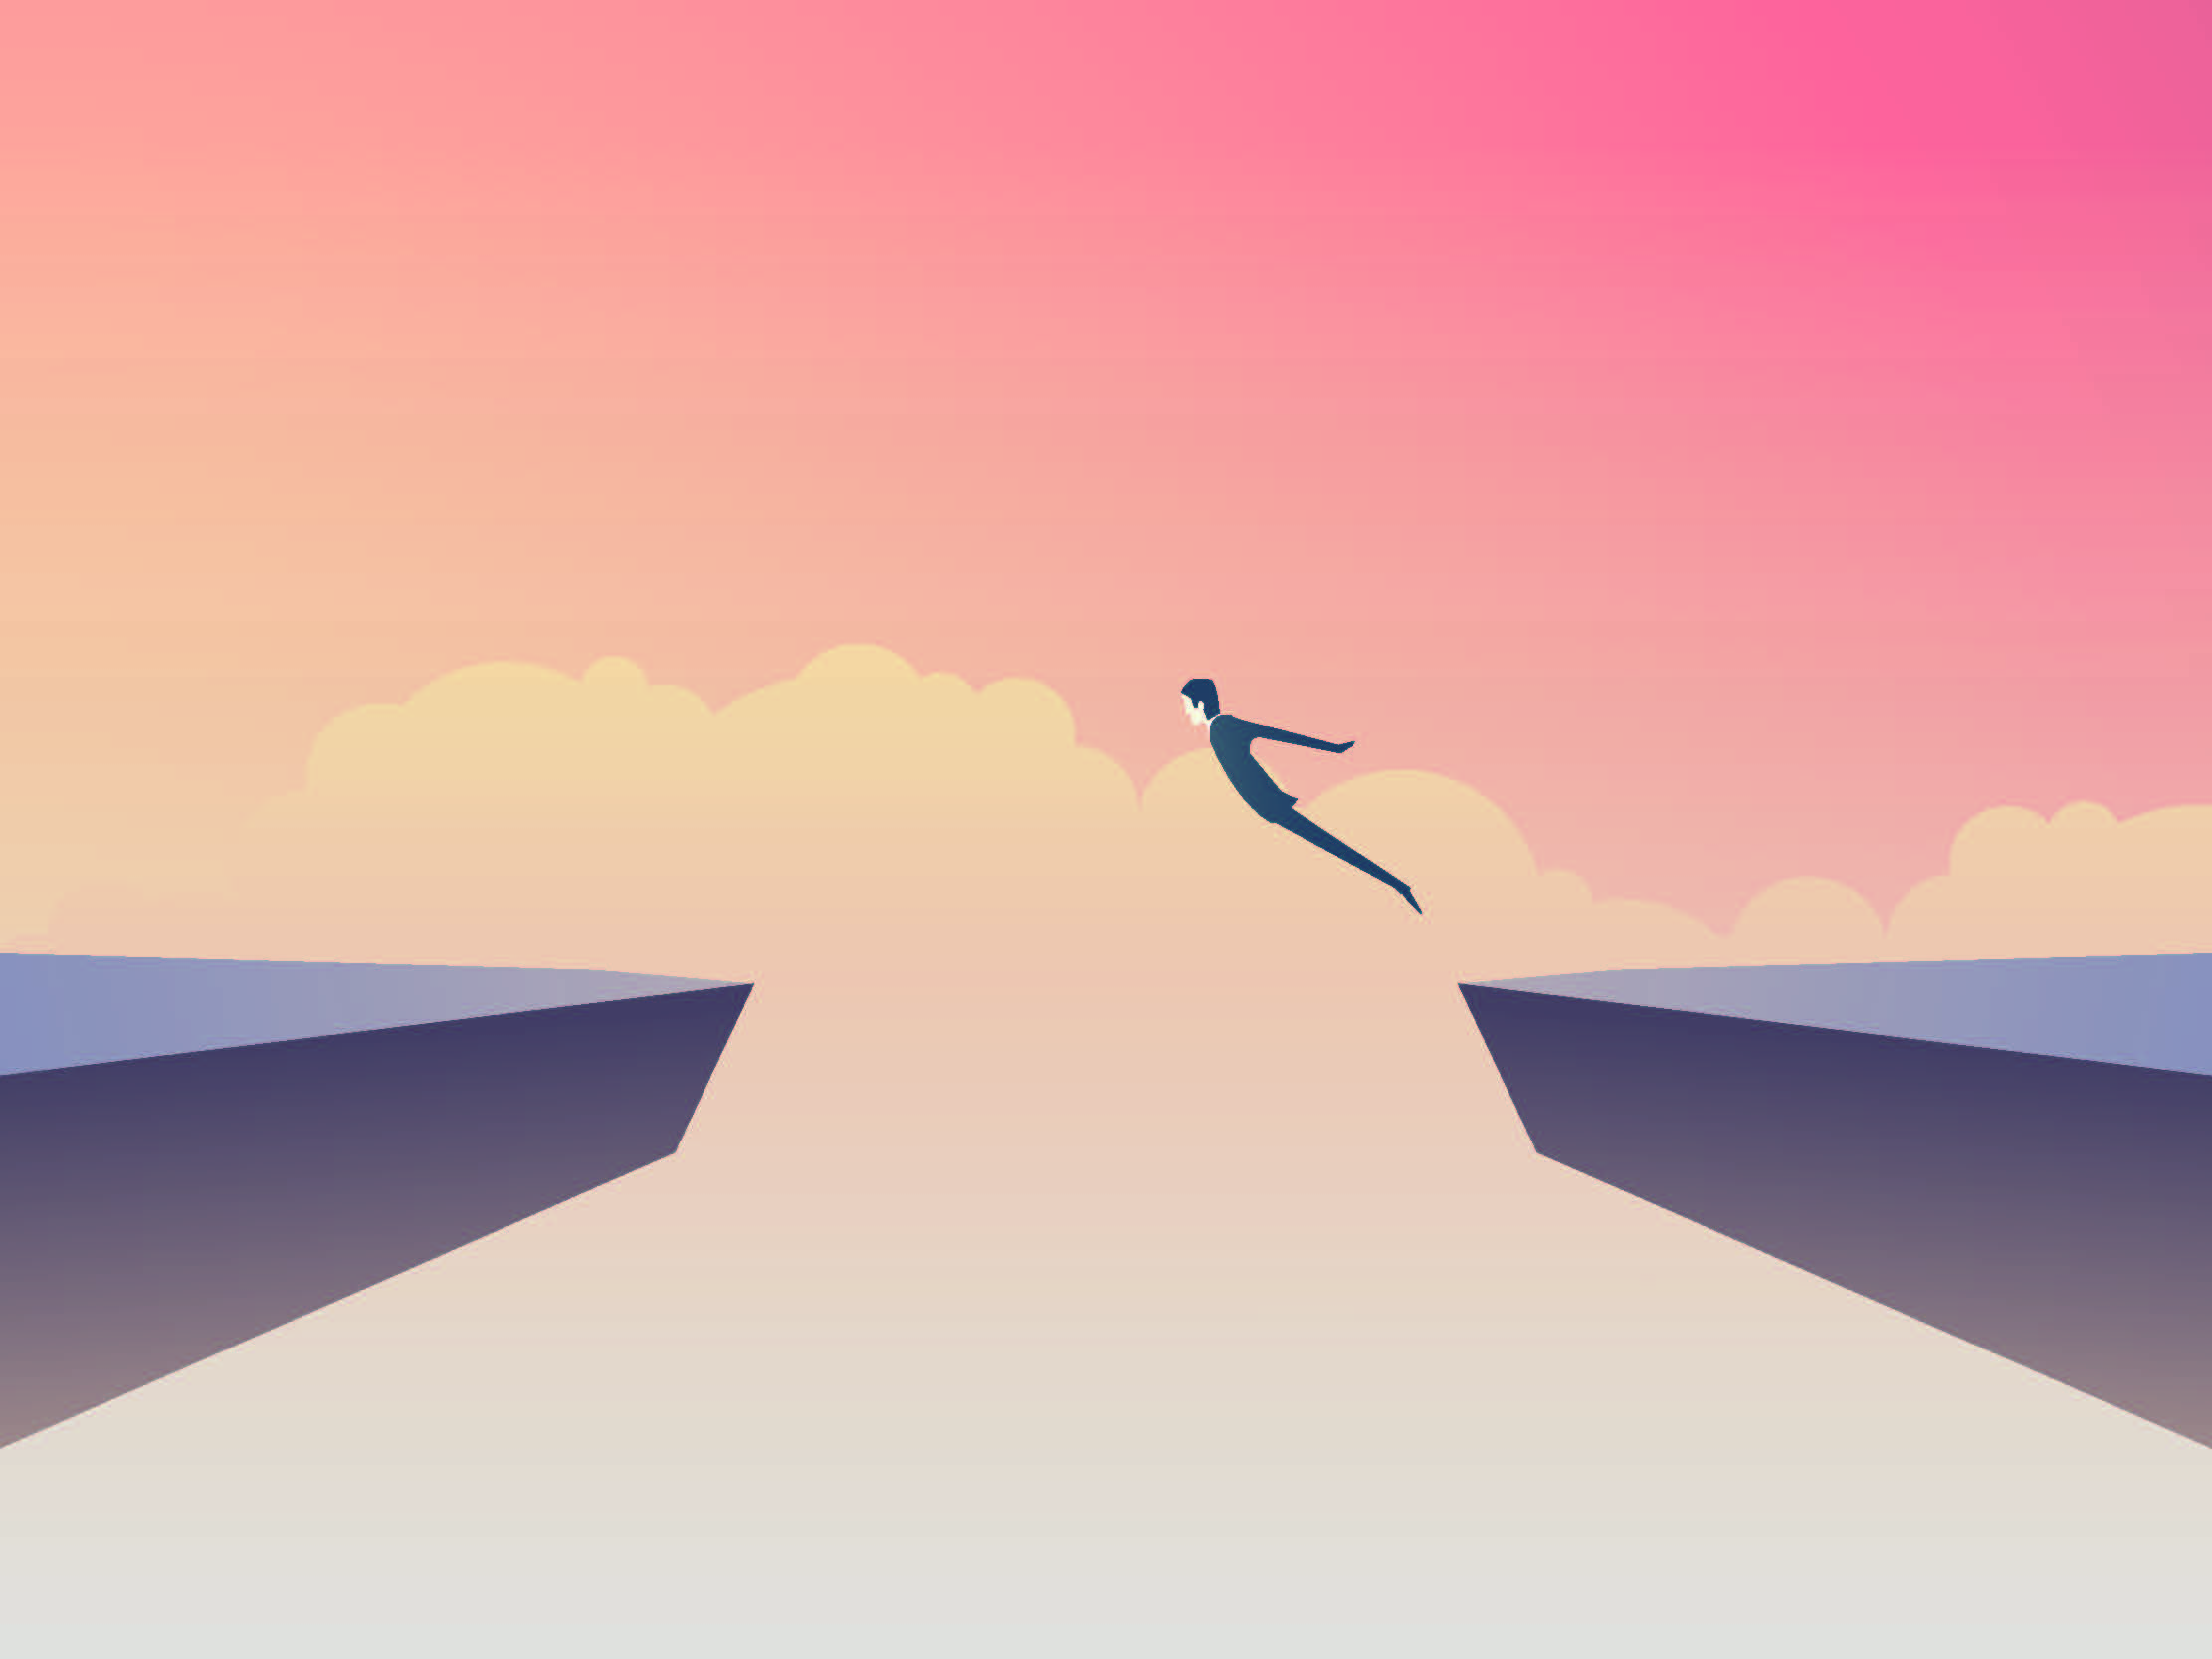 Image of man jumping off cliff